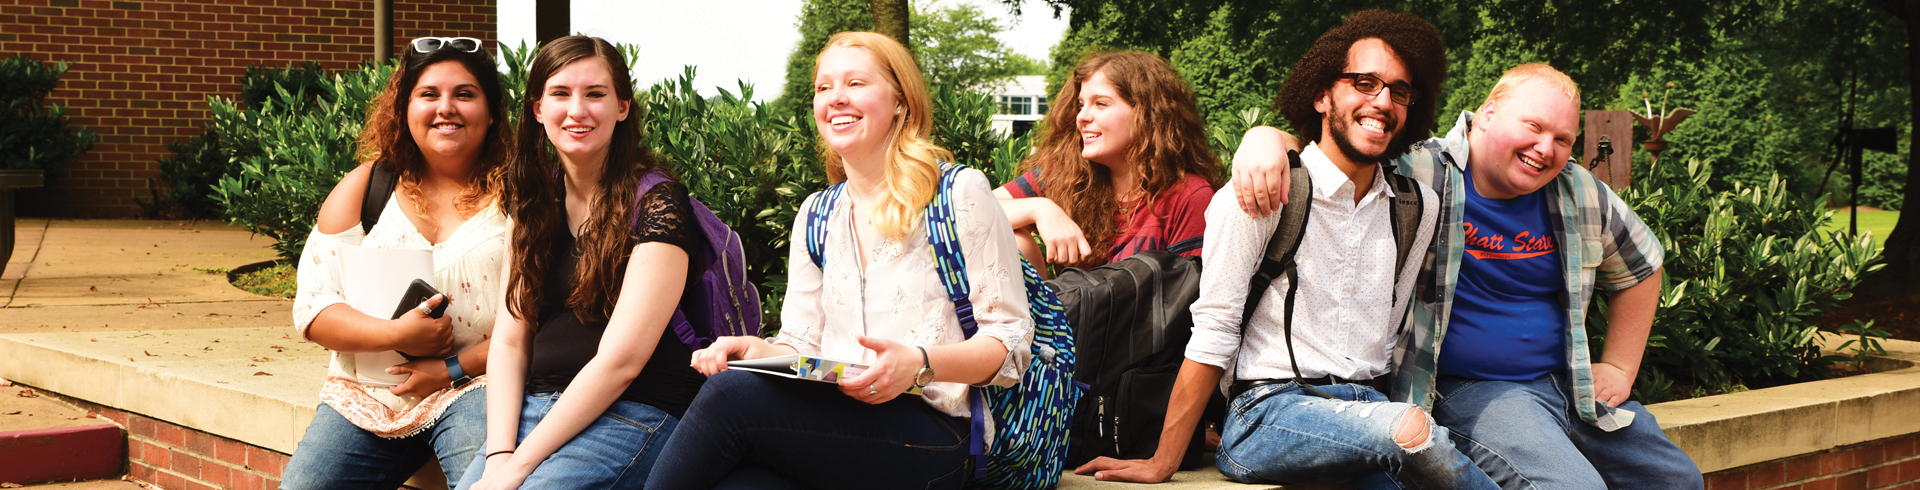 Photo of students sitting in courtyard